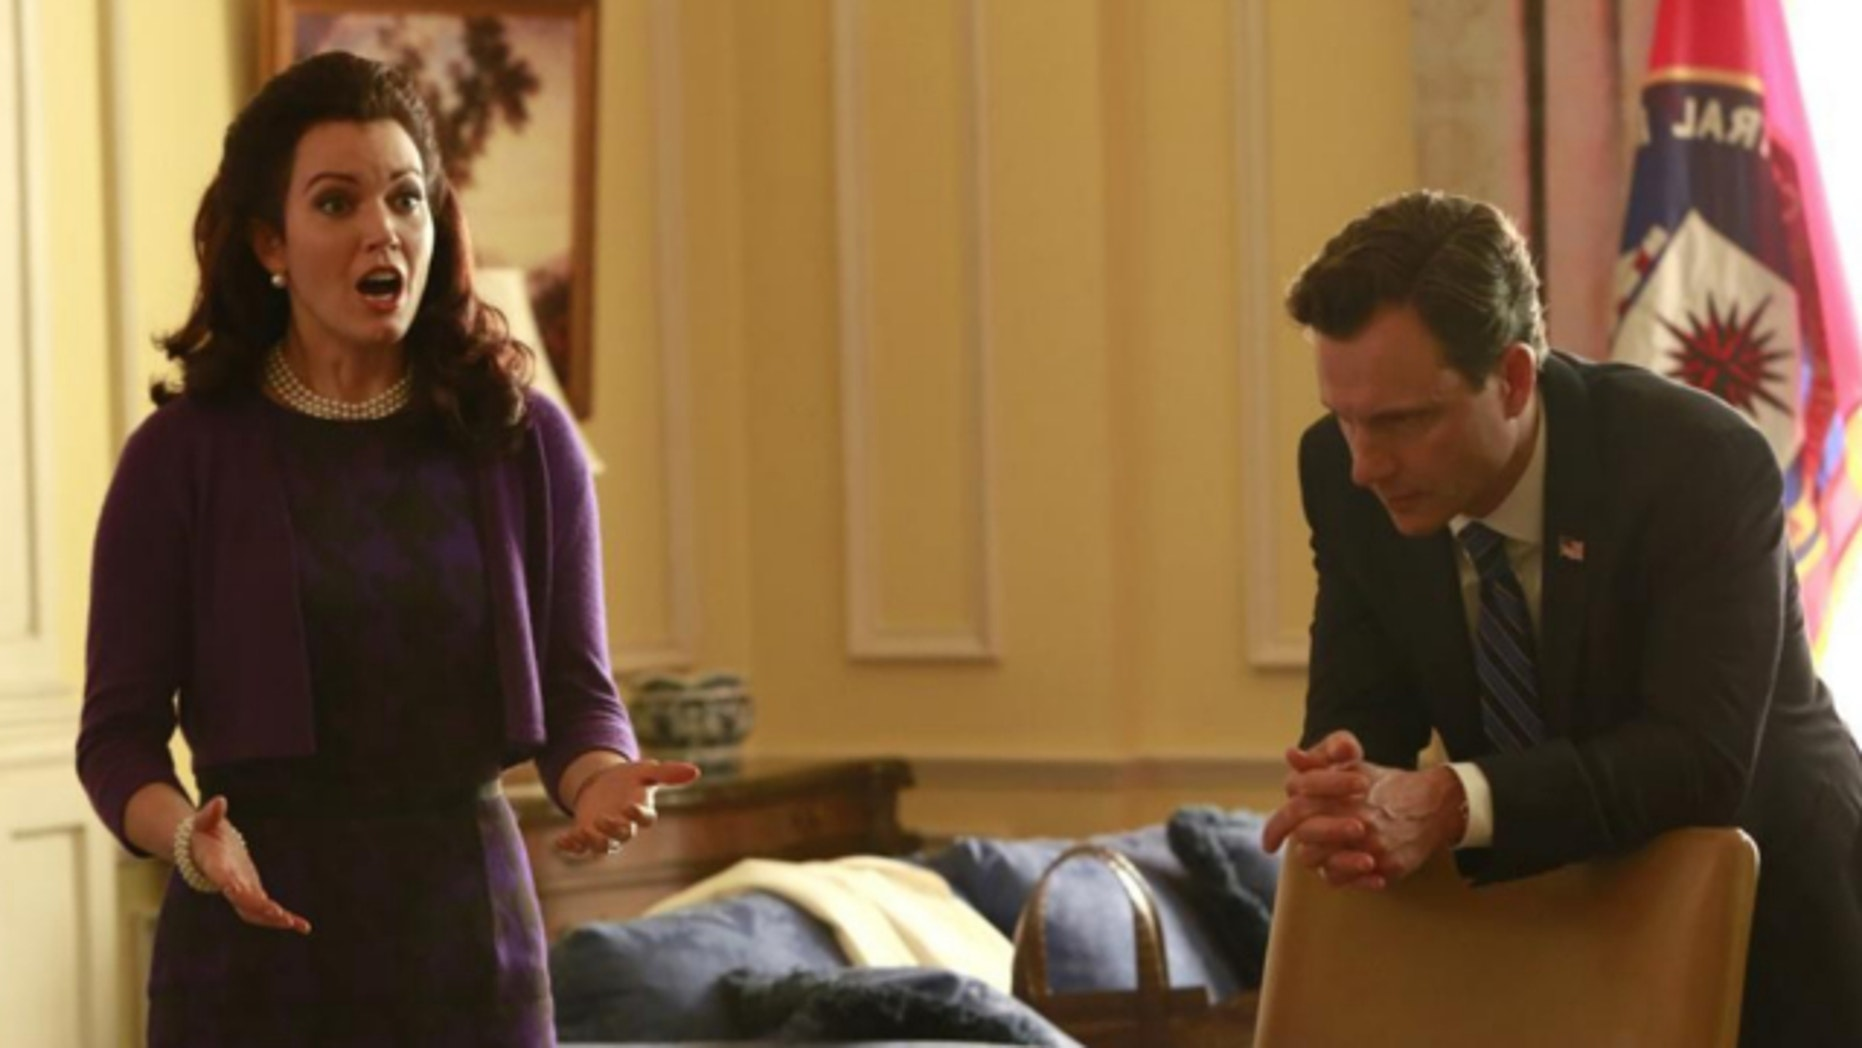 """This image released by ABC shows actress Bellamy Young and actor Tony Goldwyn in a scene from """"Scandal."""" The series airs Thursdays at 10 p.m. EST on ABC."""